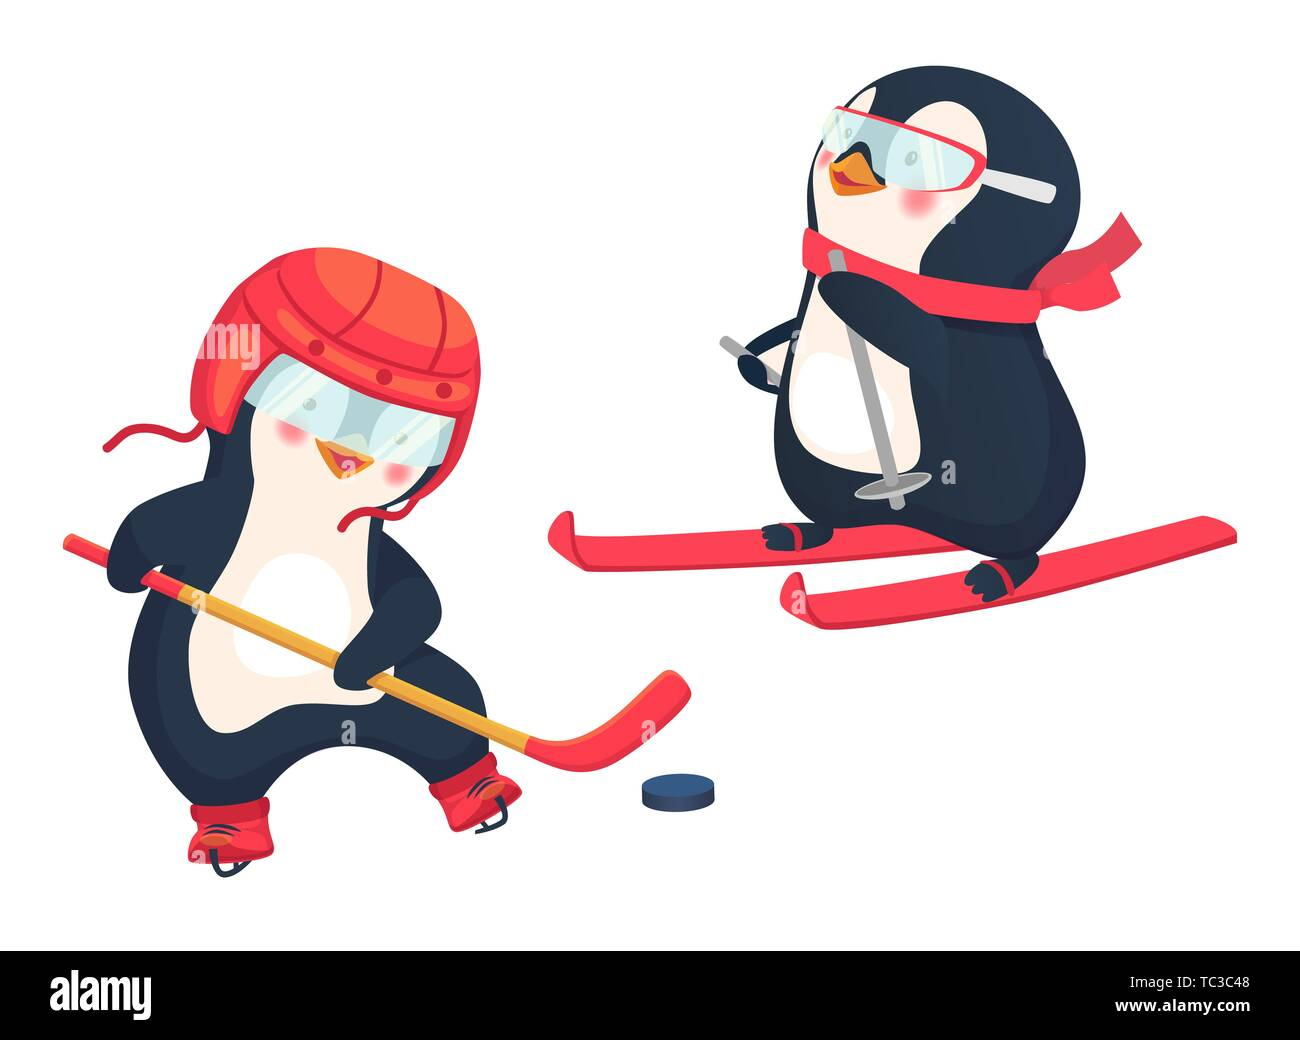 penguin hockey player and penguin skier childrens sports concept active penguins illustration TC3C48